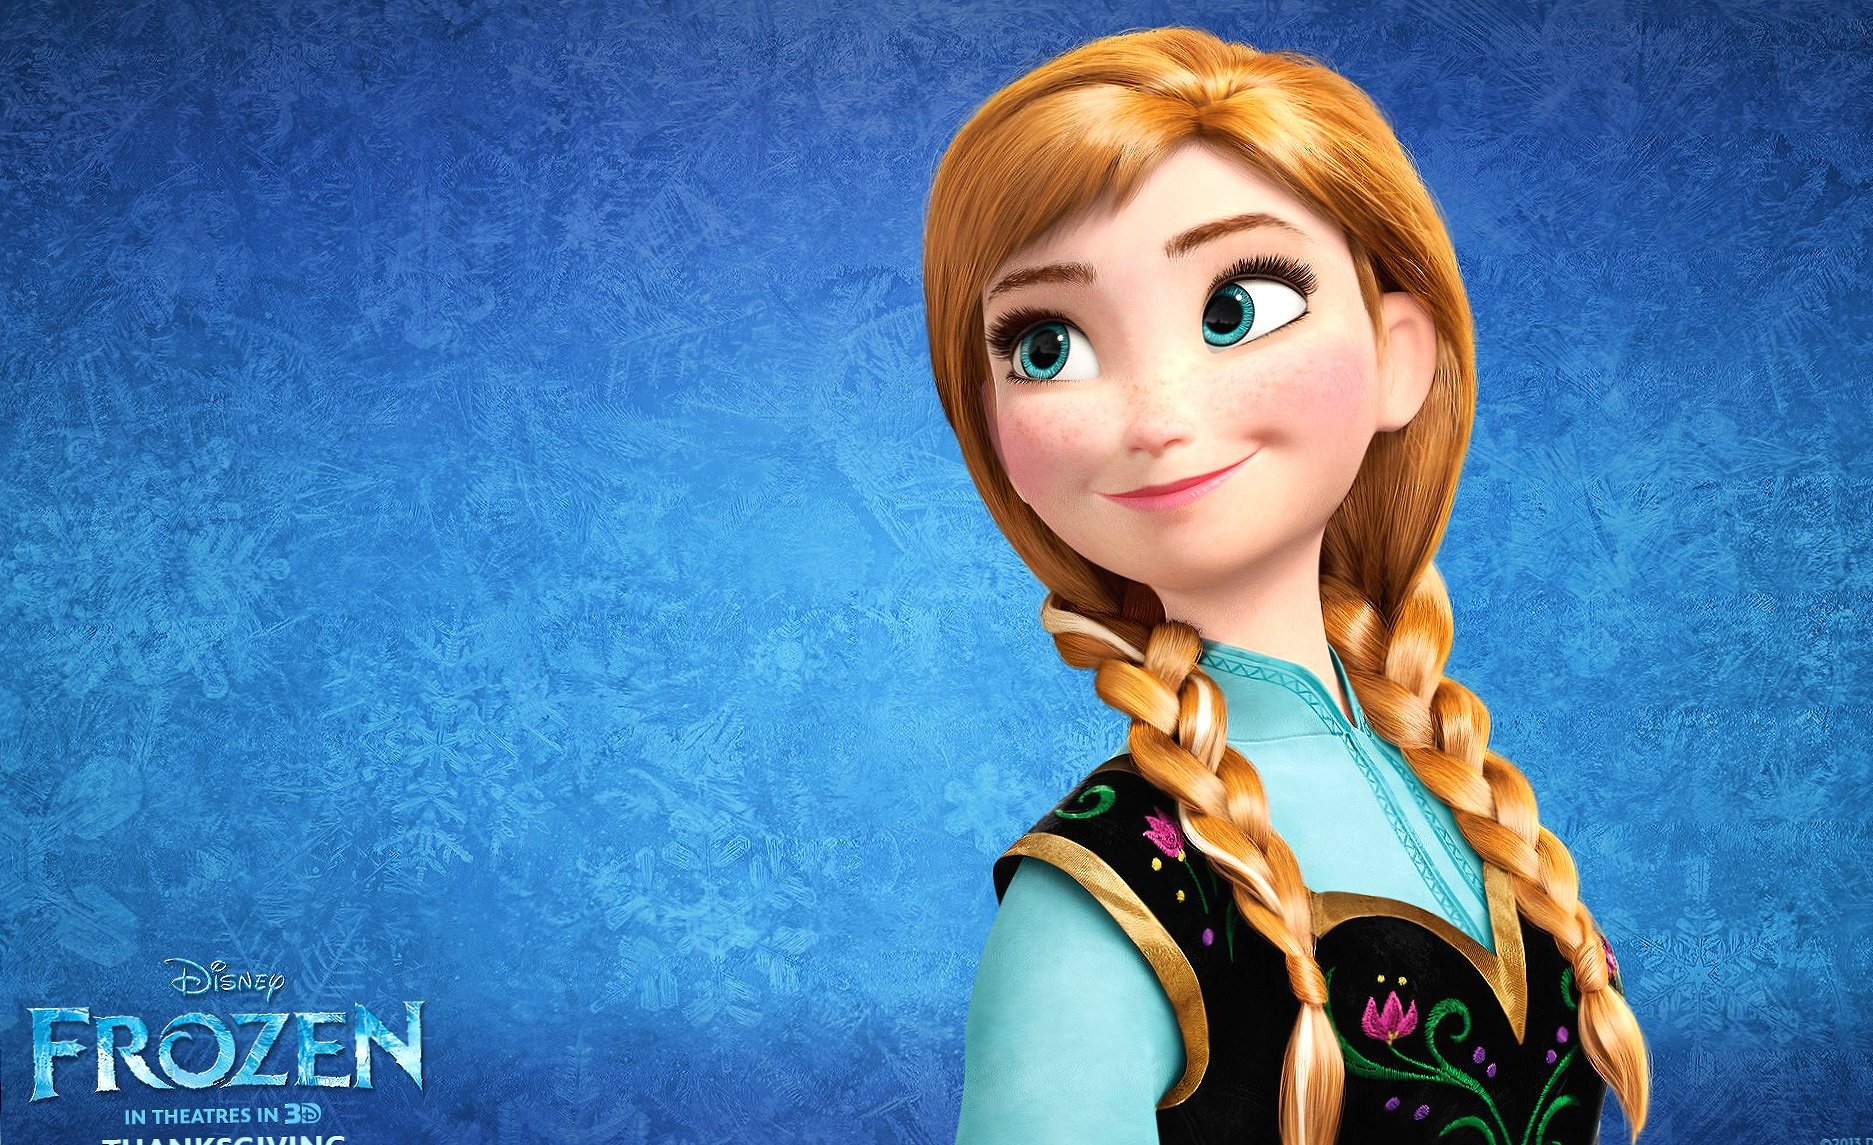 Frozen anna at 320 x 480 iPhone size wallpapers HD quality